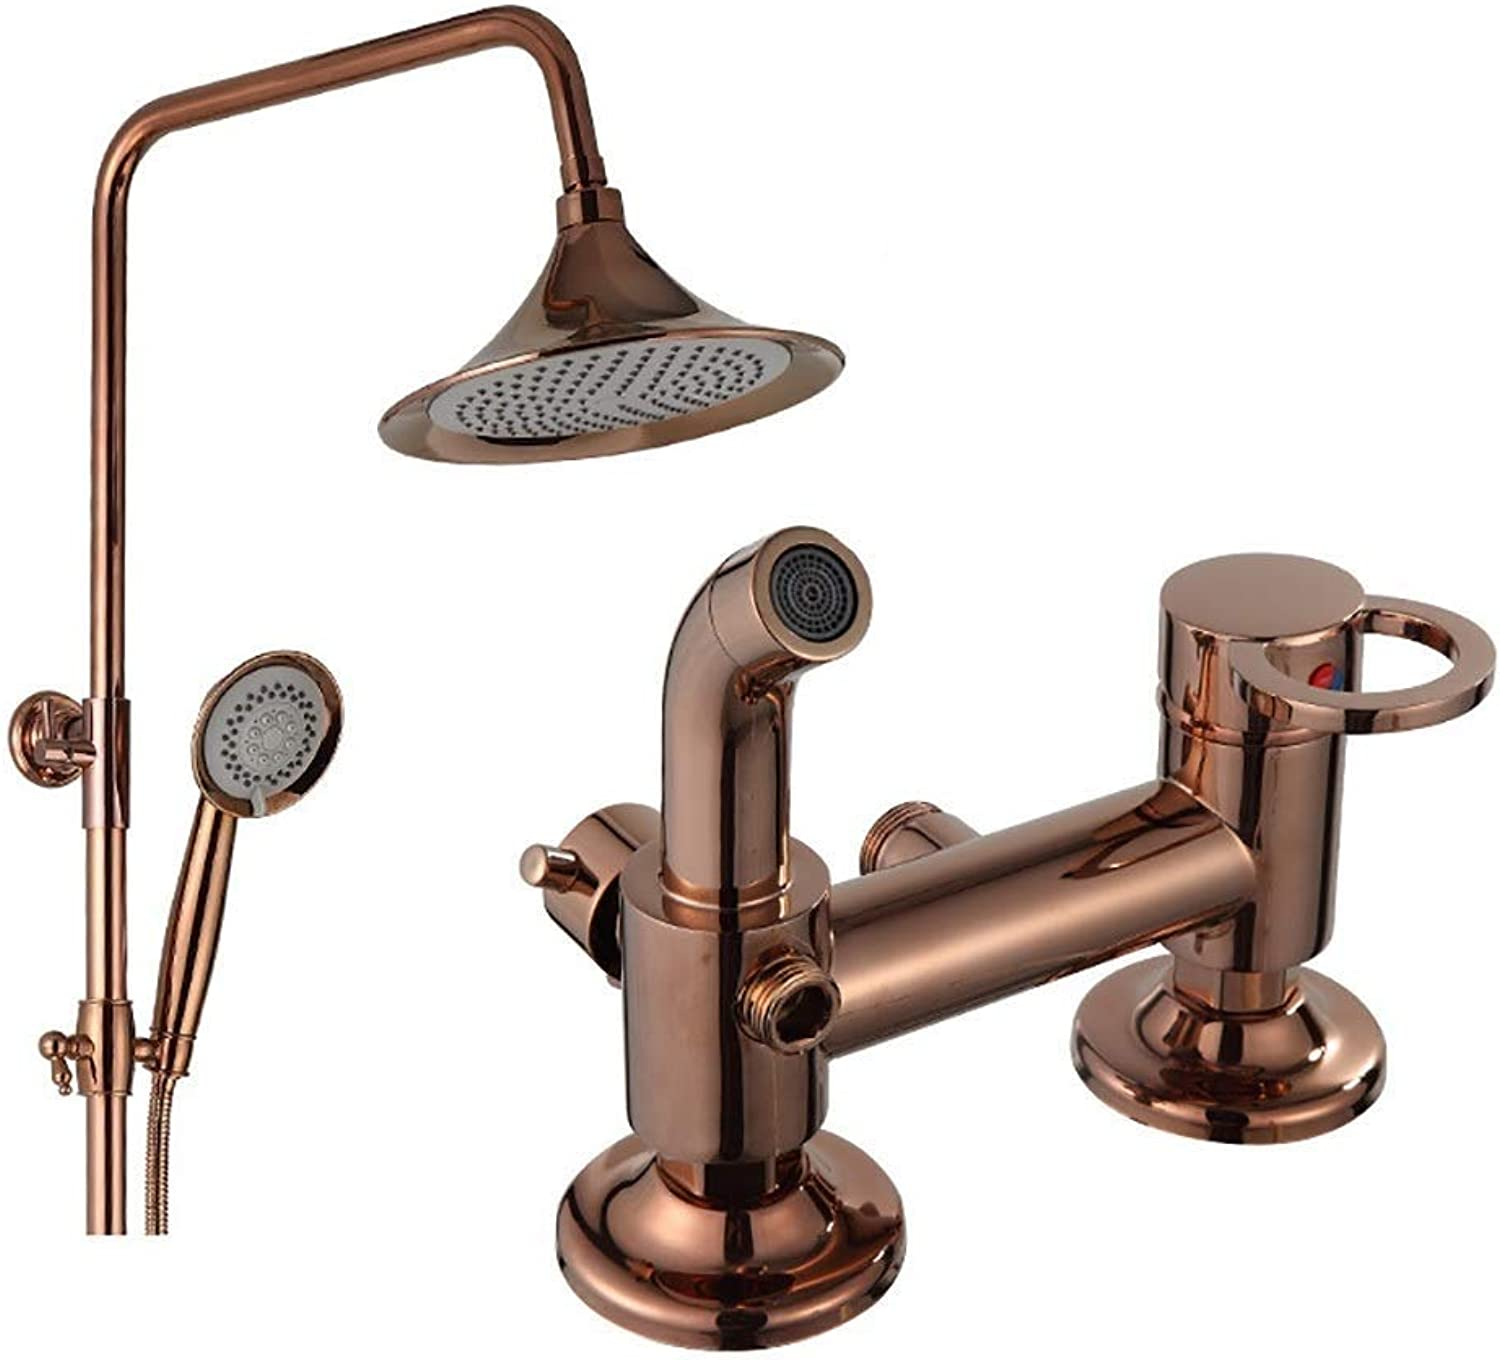 1200x800mm Shower Kit Retro Copper Shower Set, Wall-mounted shower poles extendable redating Hand Shower Bathroom Cold hot Water Tap (color   B)